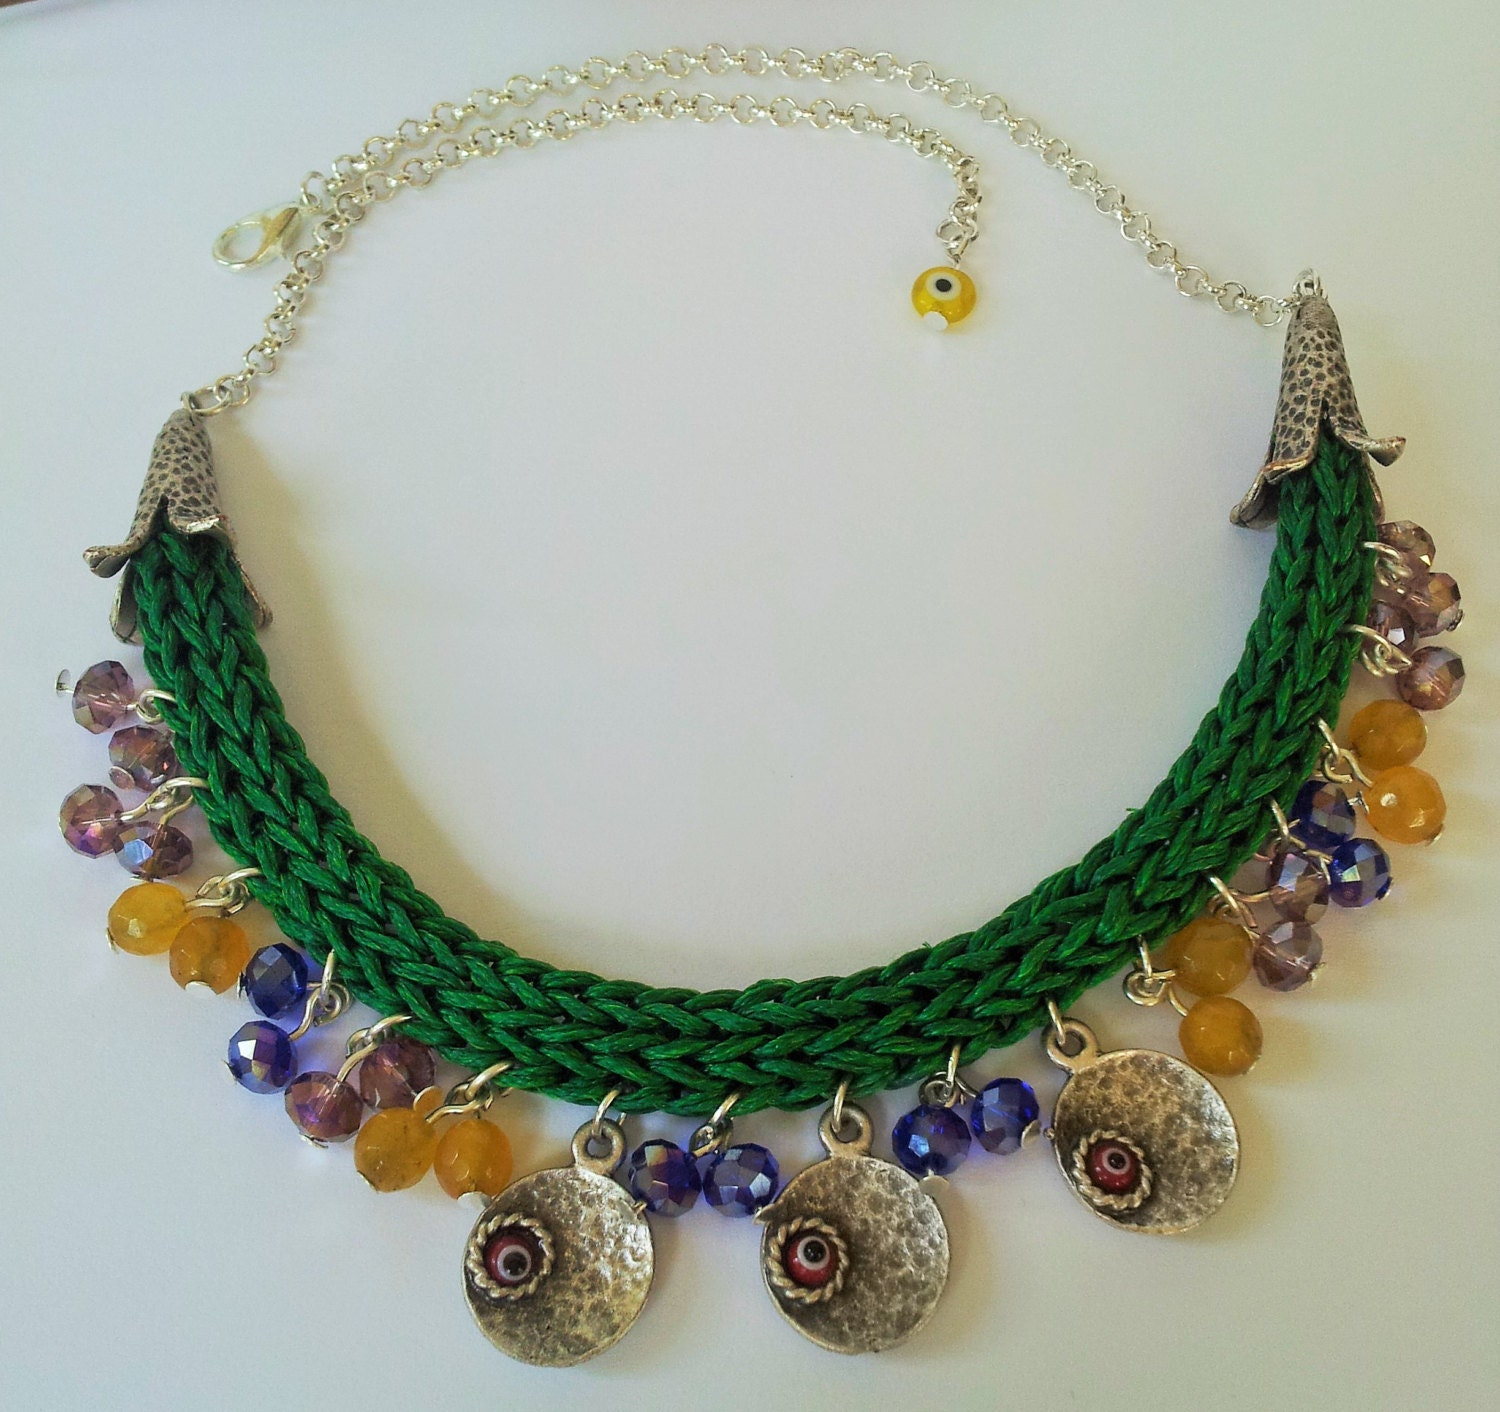 crochet necklaces with turkish style evil eye coin by